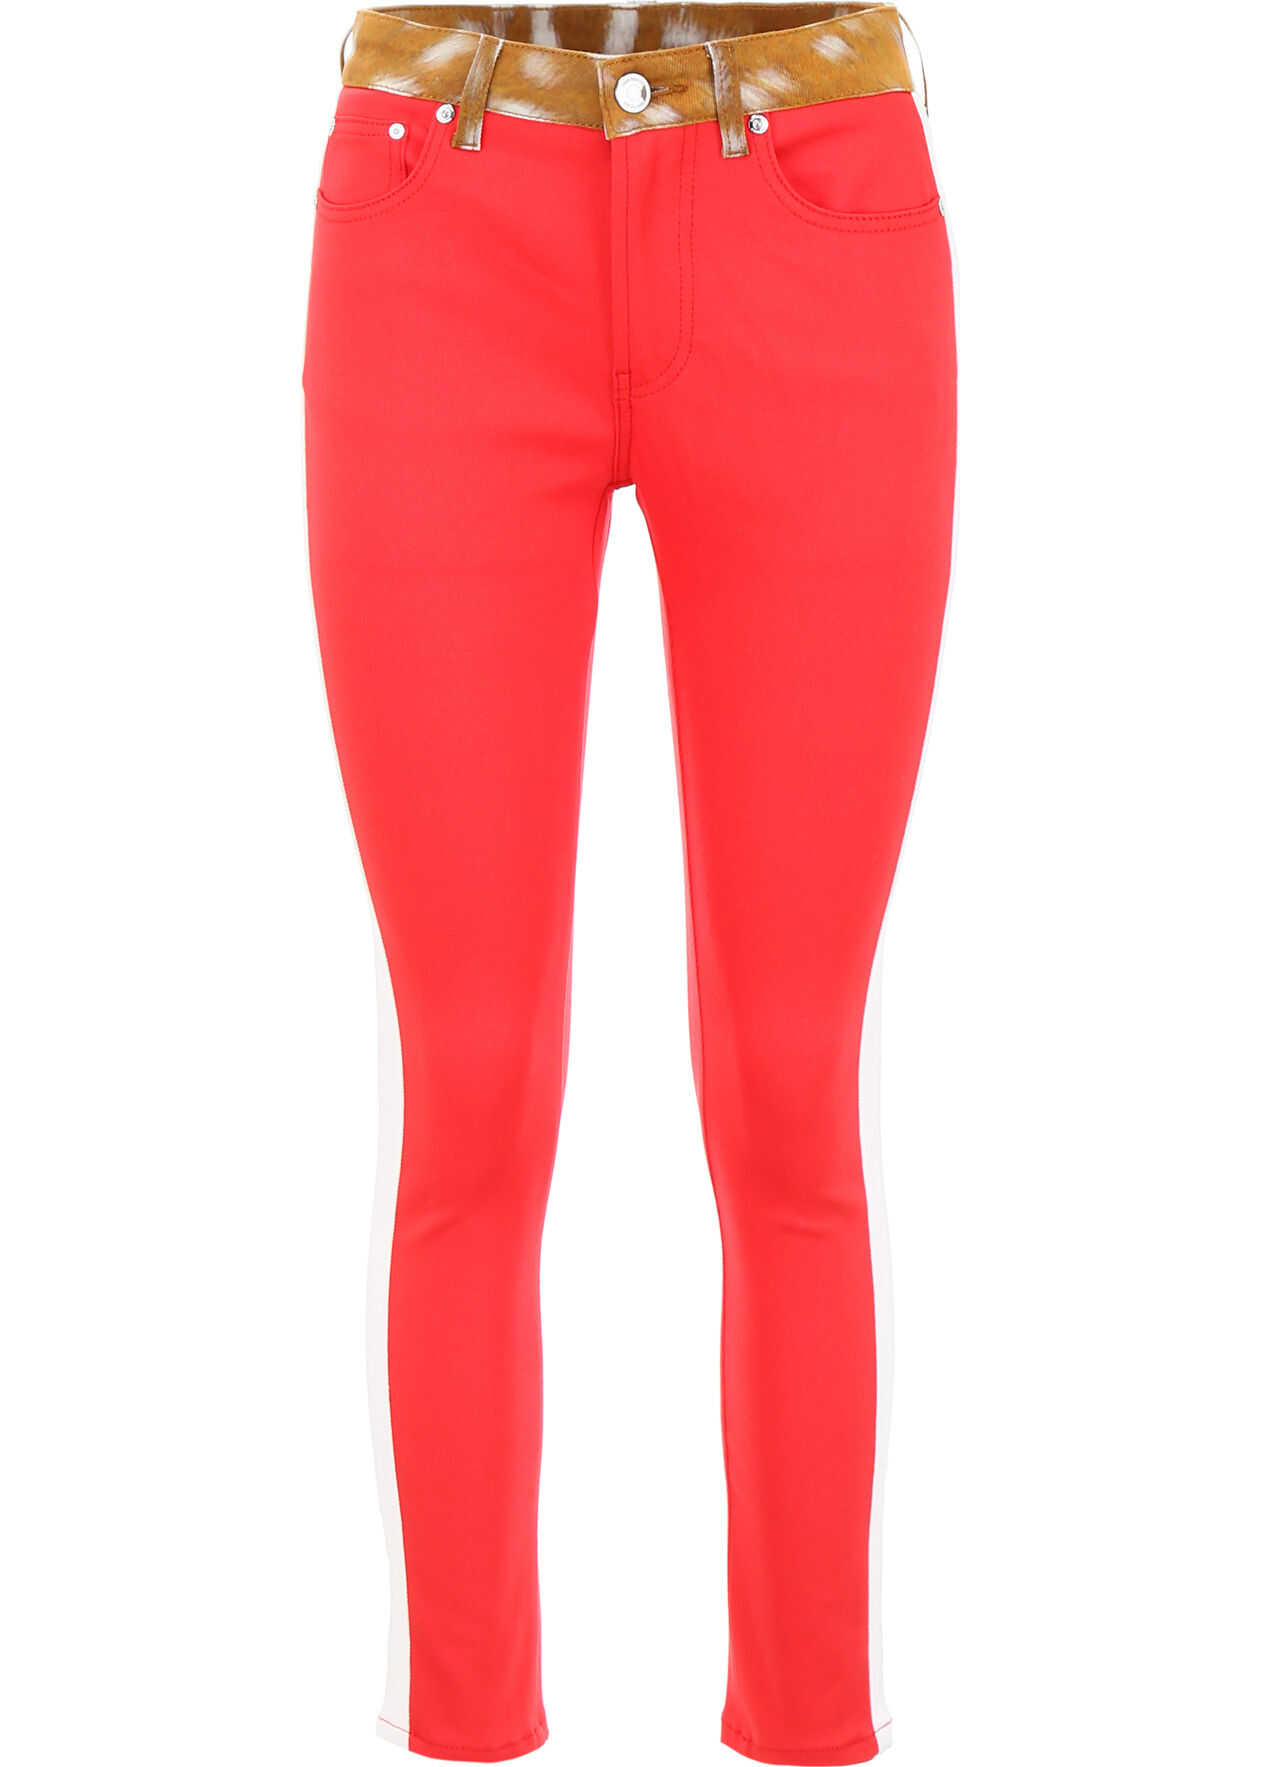 Burberry Bicolor Jeans With Fawn Print BRIGHT RED